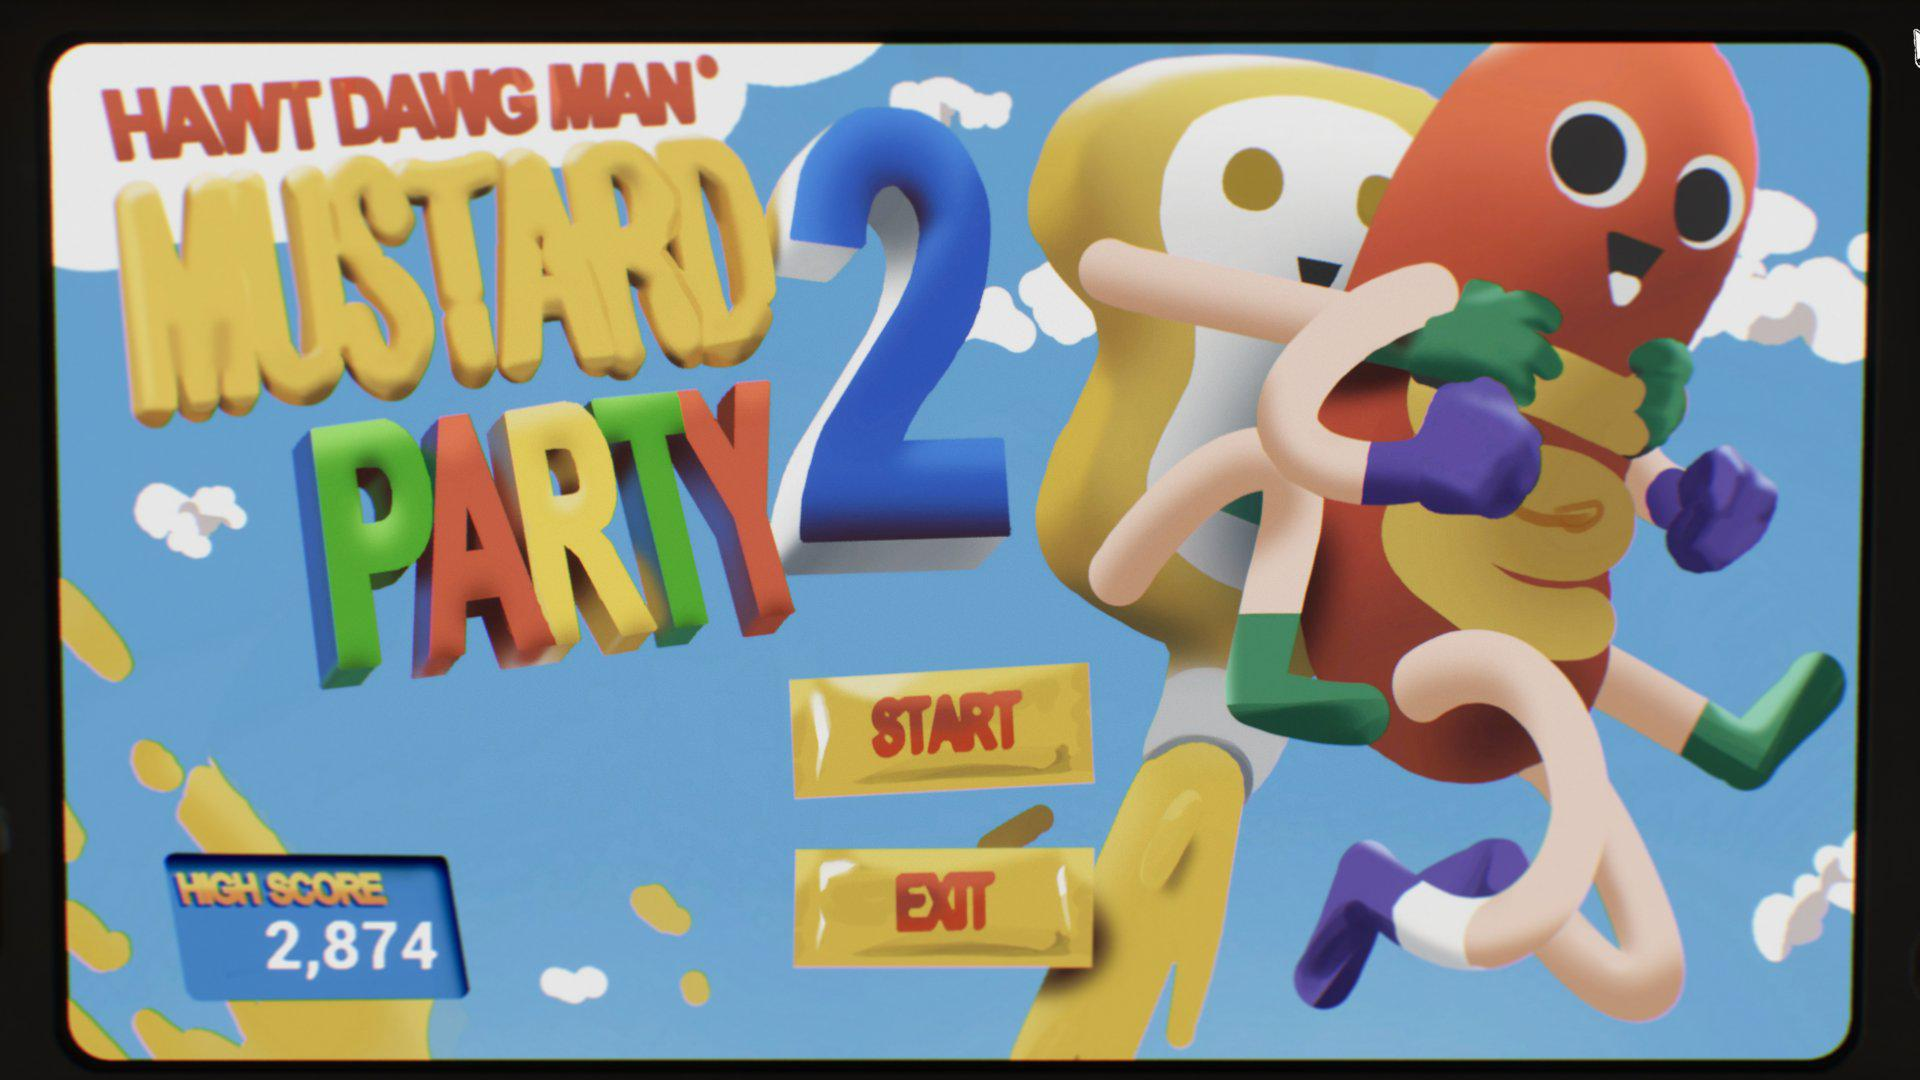 Меню мини-игры Hawt Dawg Man: Mustard Party 2